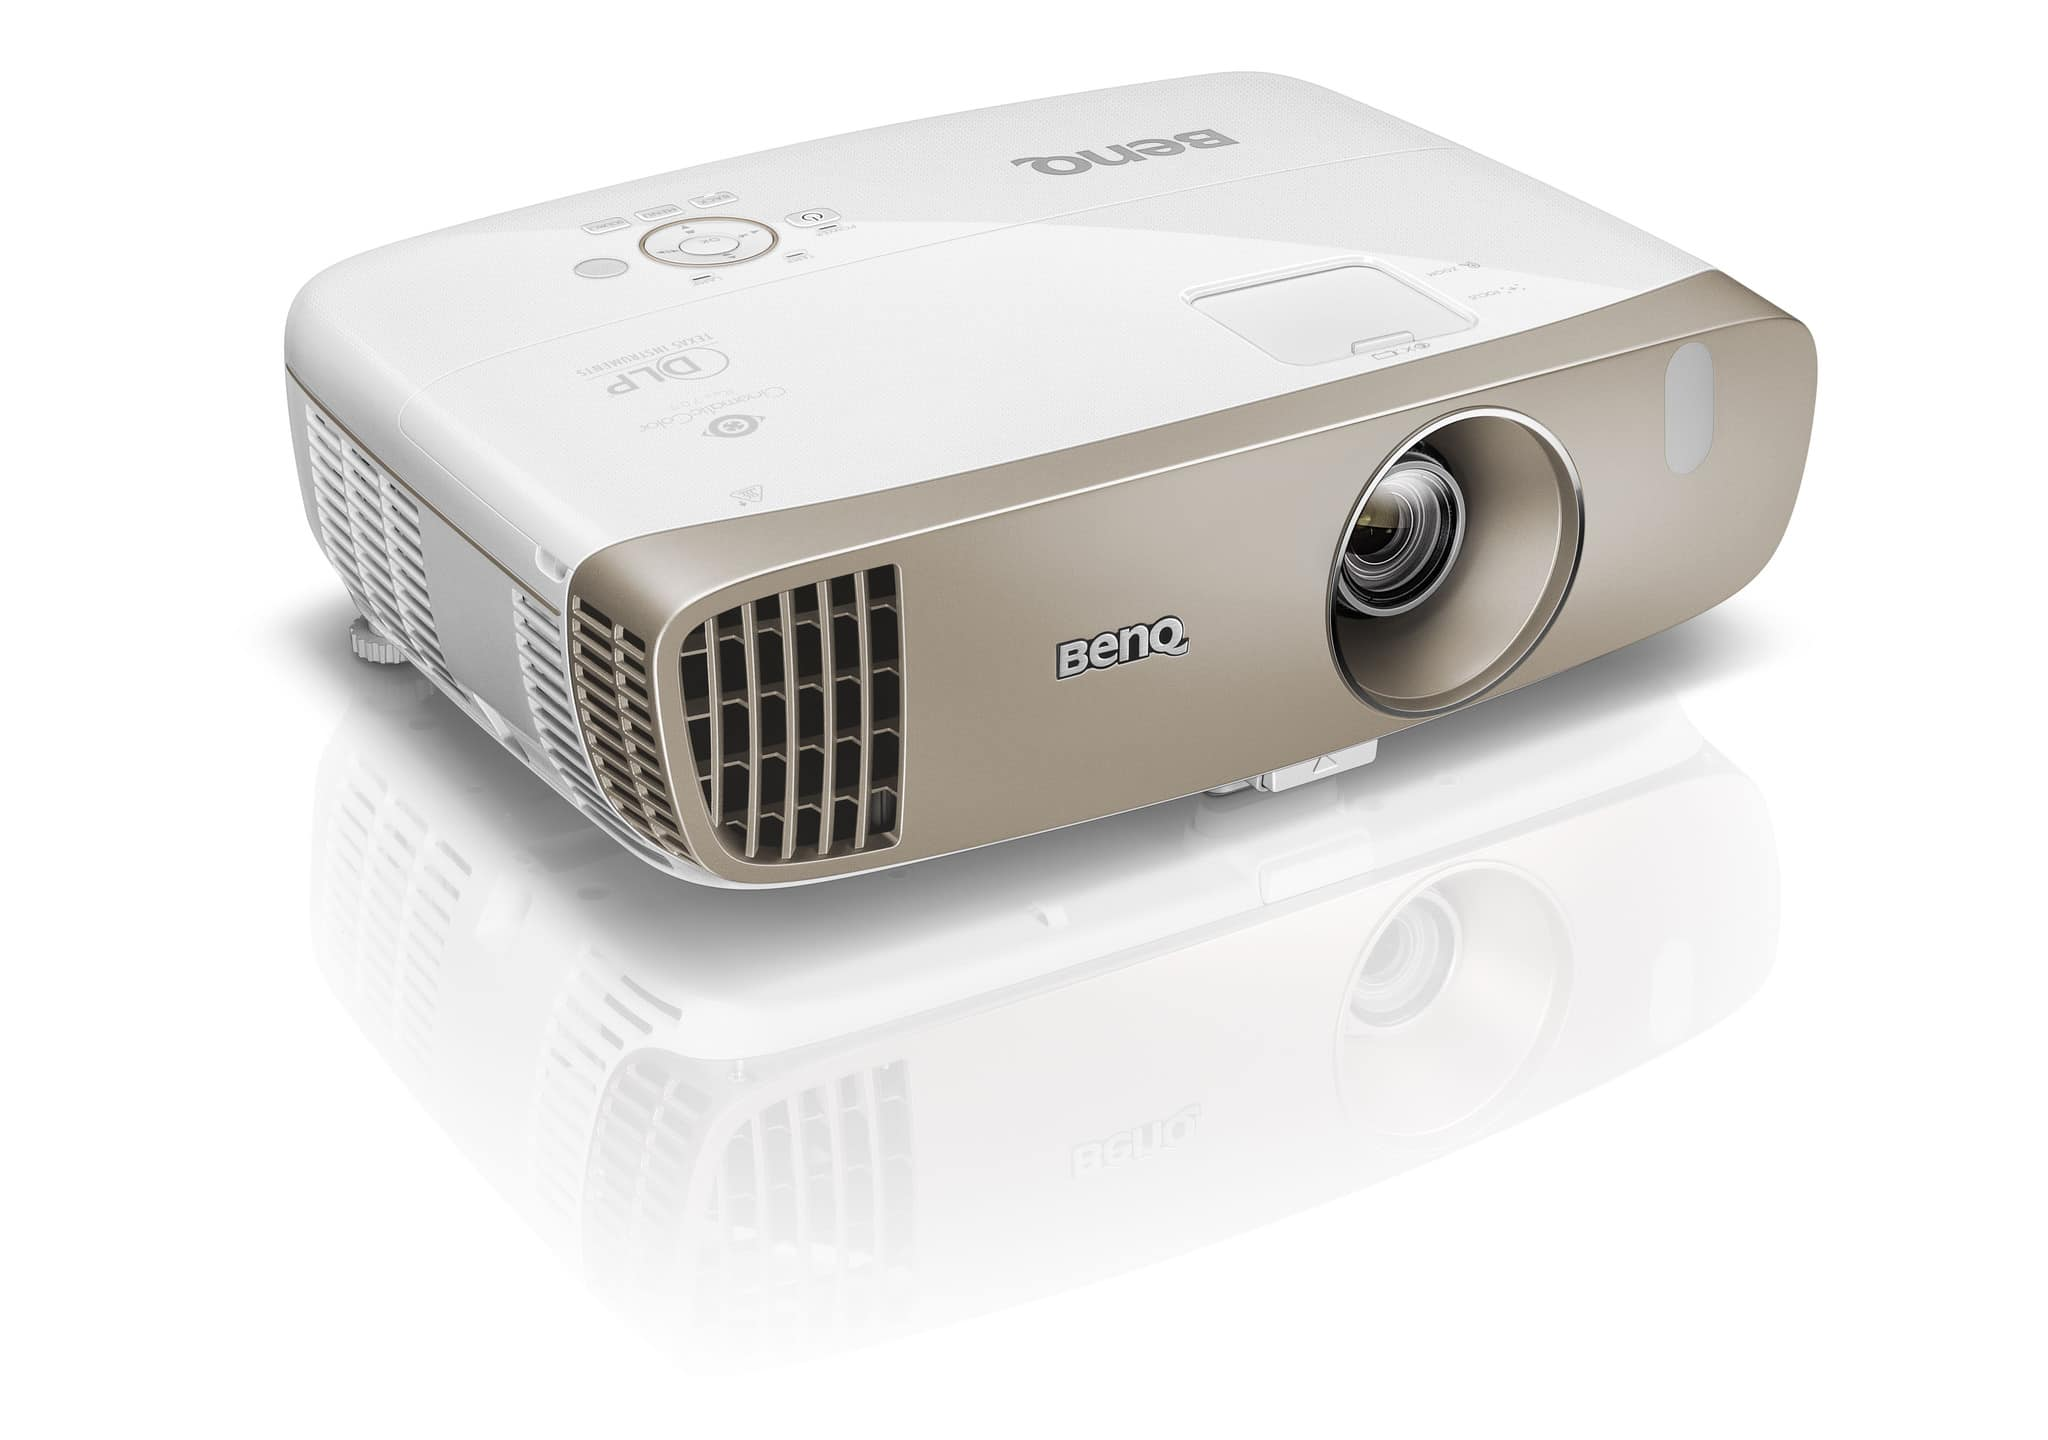 Benq Ht3050 And Ht4050 Projector Reviews Reference Home